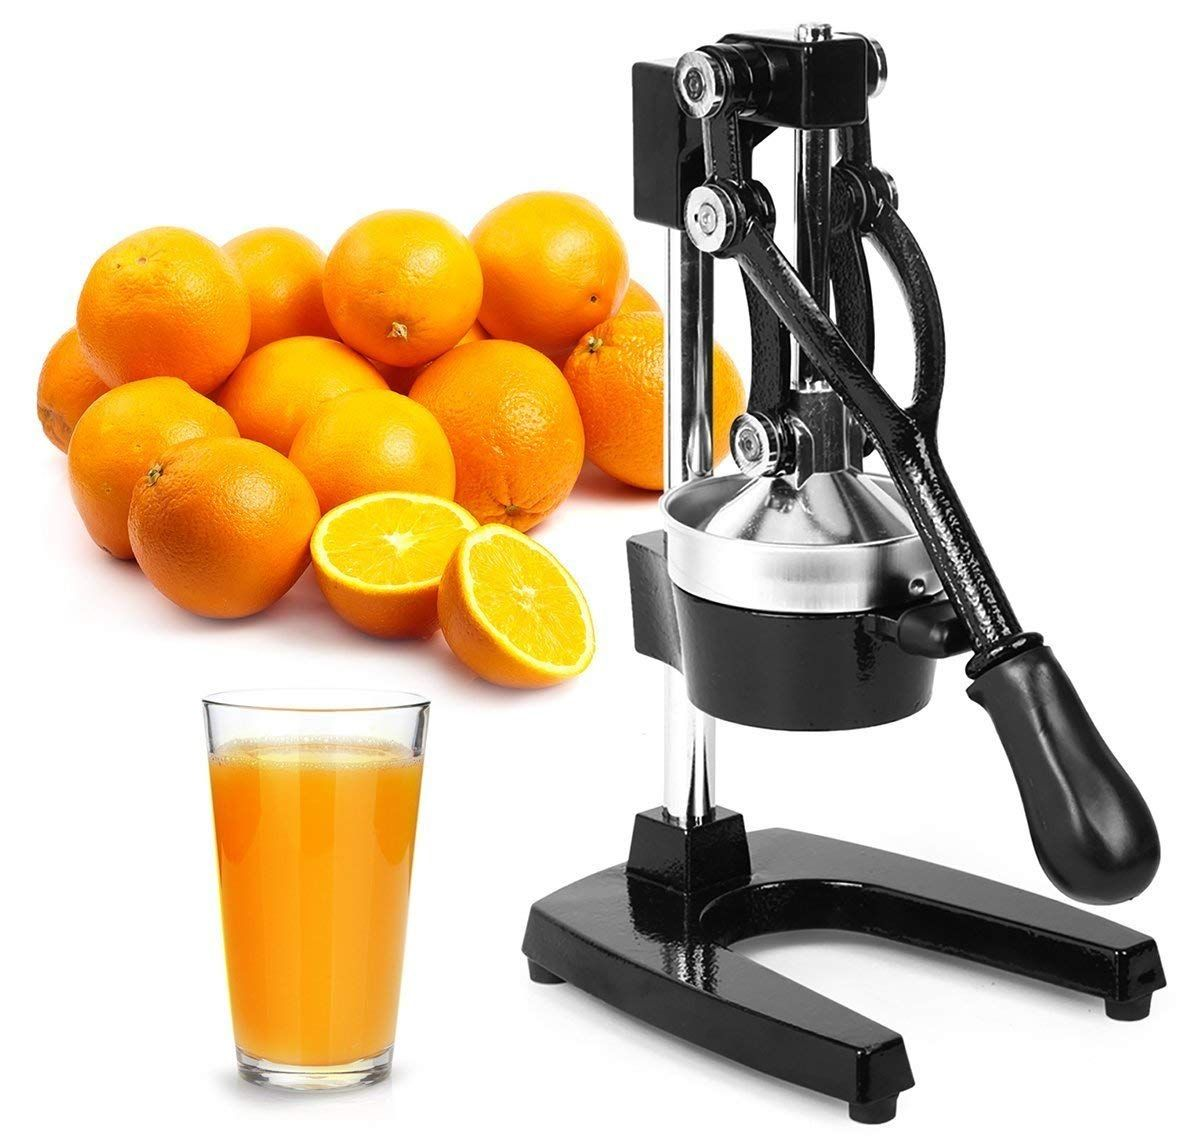 HAND PRESS Citrus Squeezer Fruit Juicer